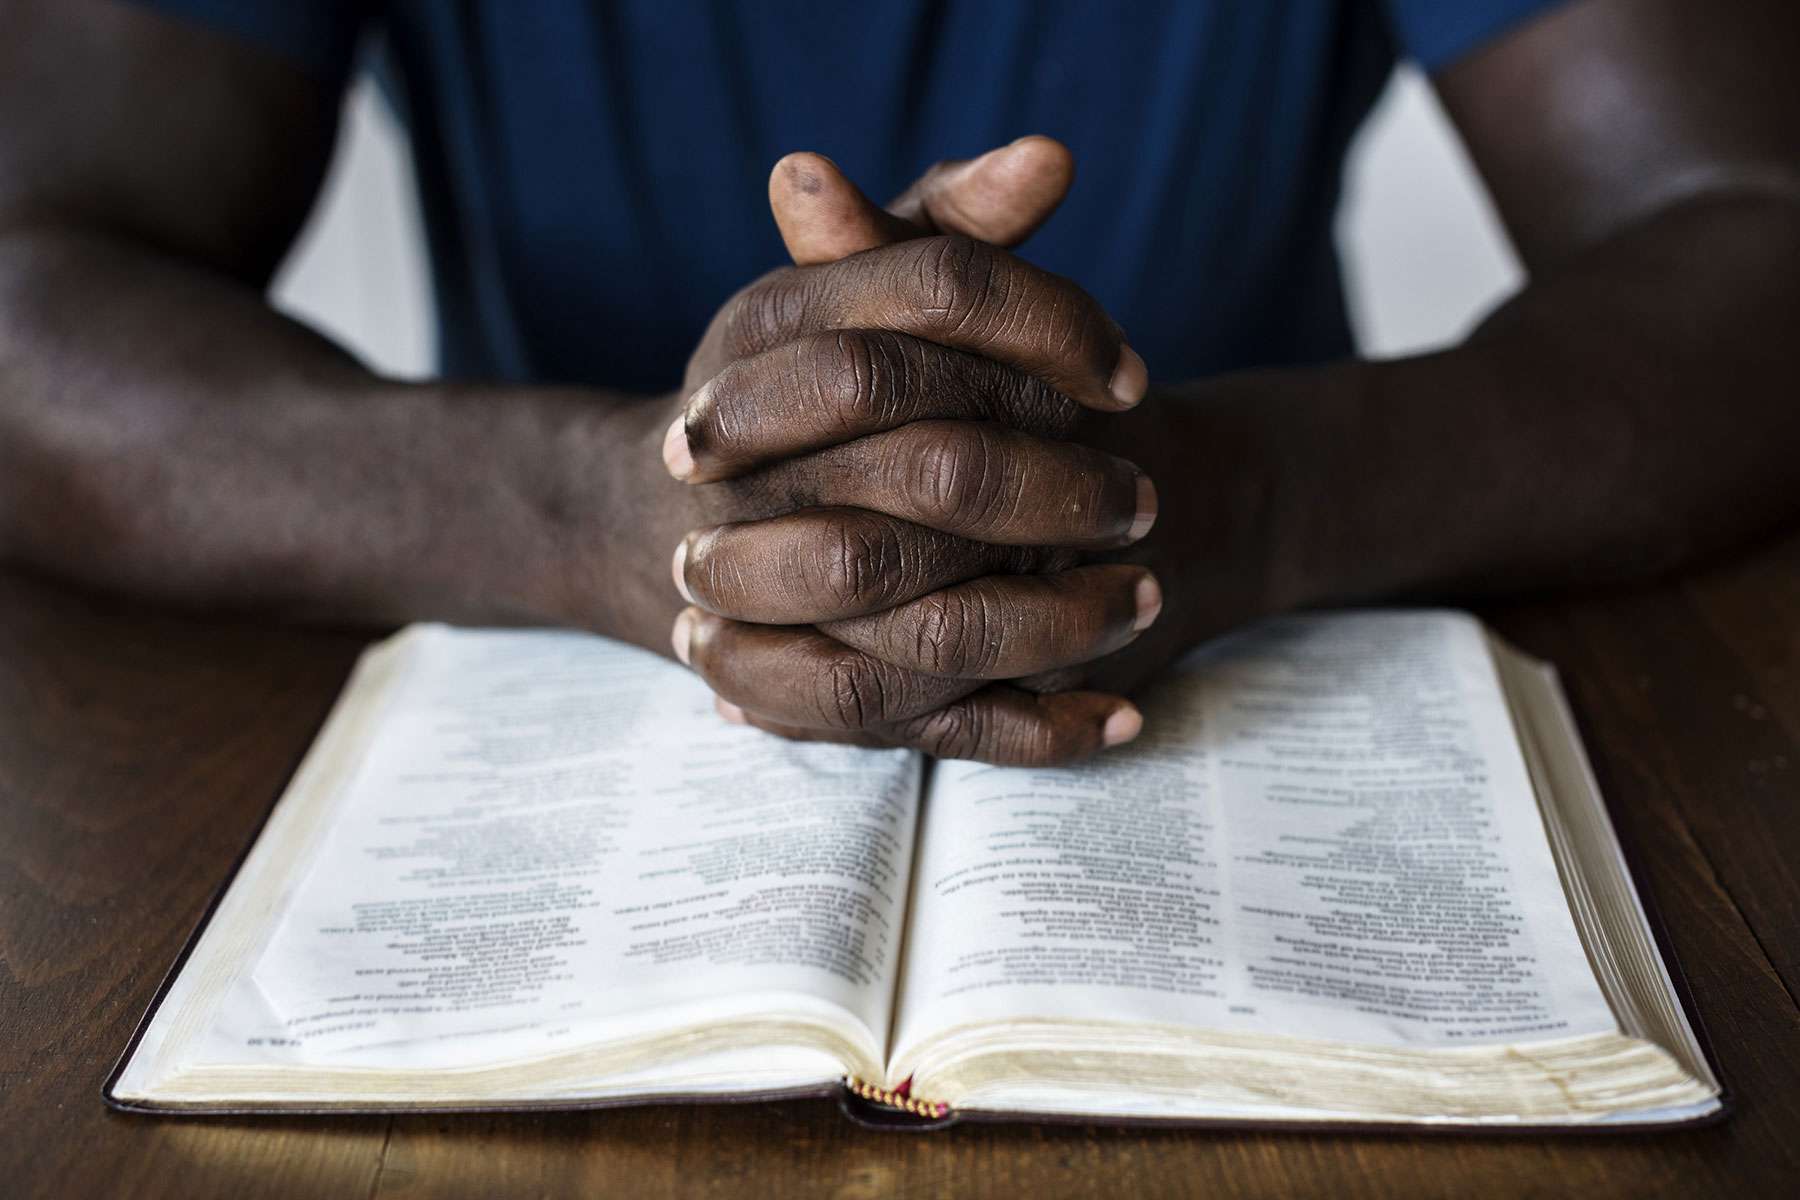 Bible Study: Blacks Read Holy Scriptures More Often Than